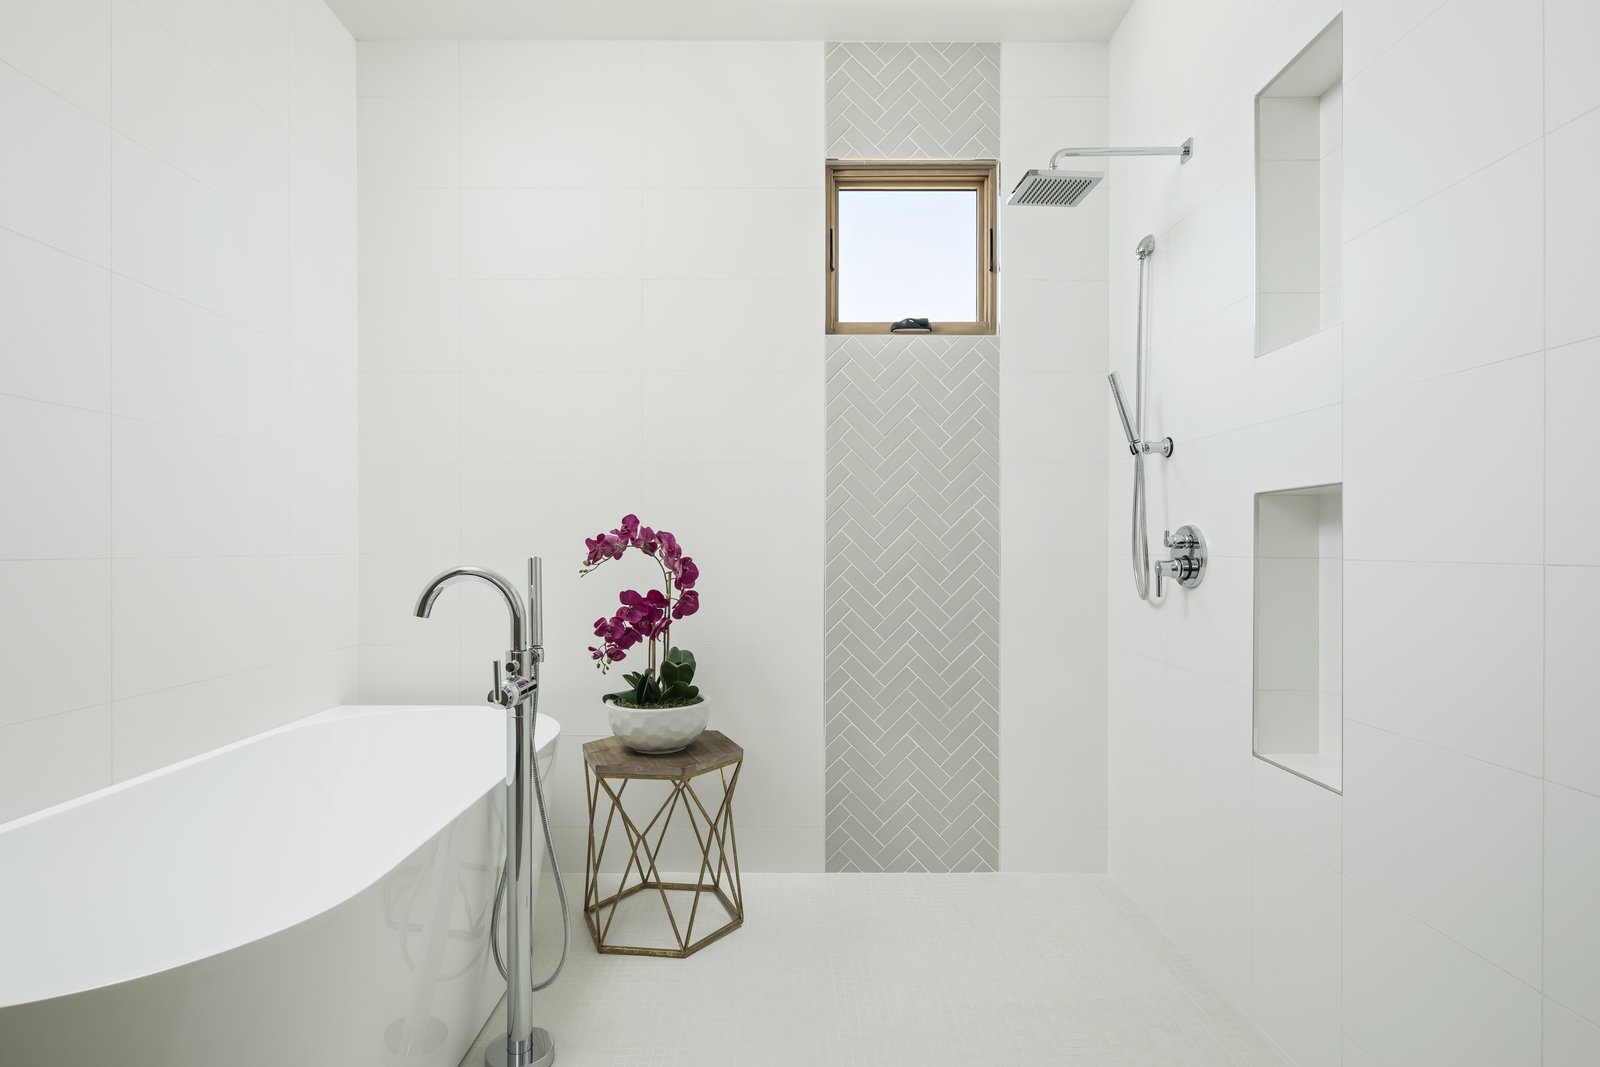 Bath Room, Engineered Quartz Counter, Undermount Sink, Porcelain Tile Floor, Freestanding Tub, Open Shower, Wall Lighting, Ceiling Lighting, Ceramic Tile Wall, Concrete Floor, and Porcelain Tile Wall Master Shower and Bathtub  Canal House by The Ranch Mine